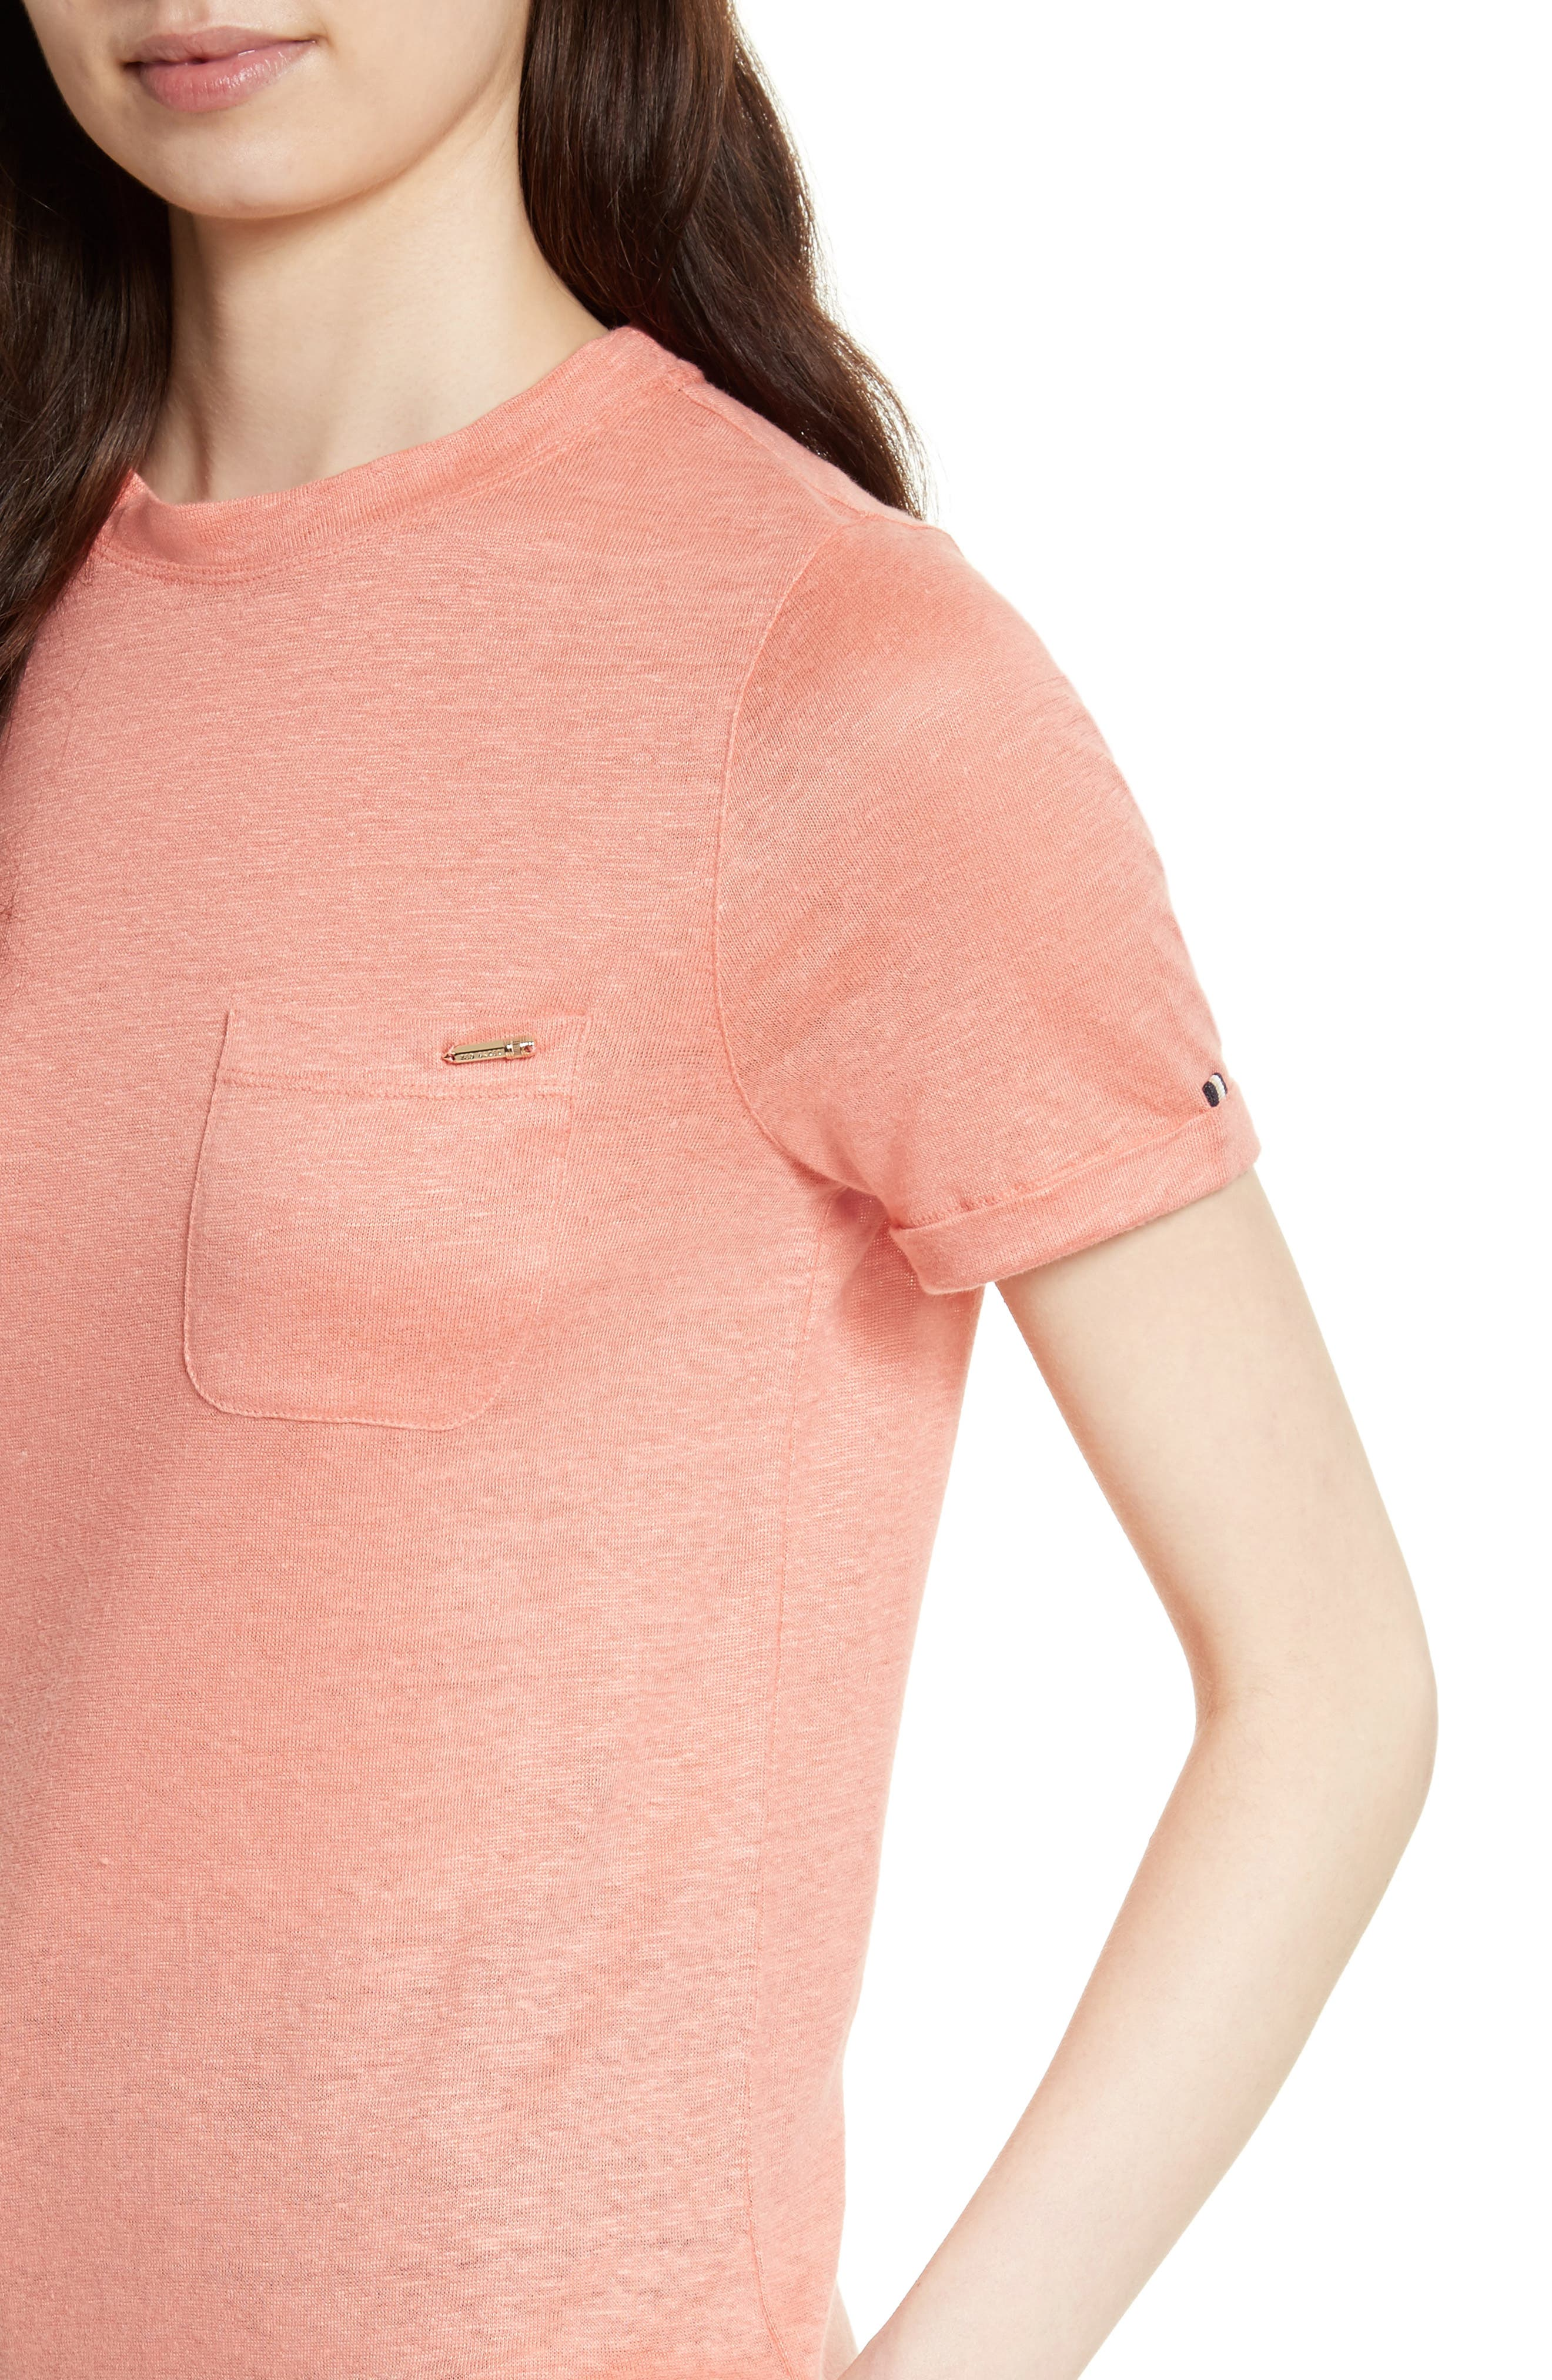 Harlaa Square Cut Linen Tee,                             Alternate thumbnail 4, color,                             950